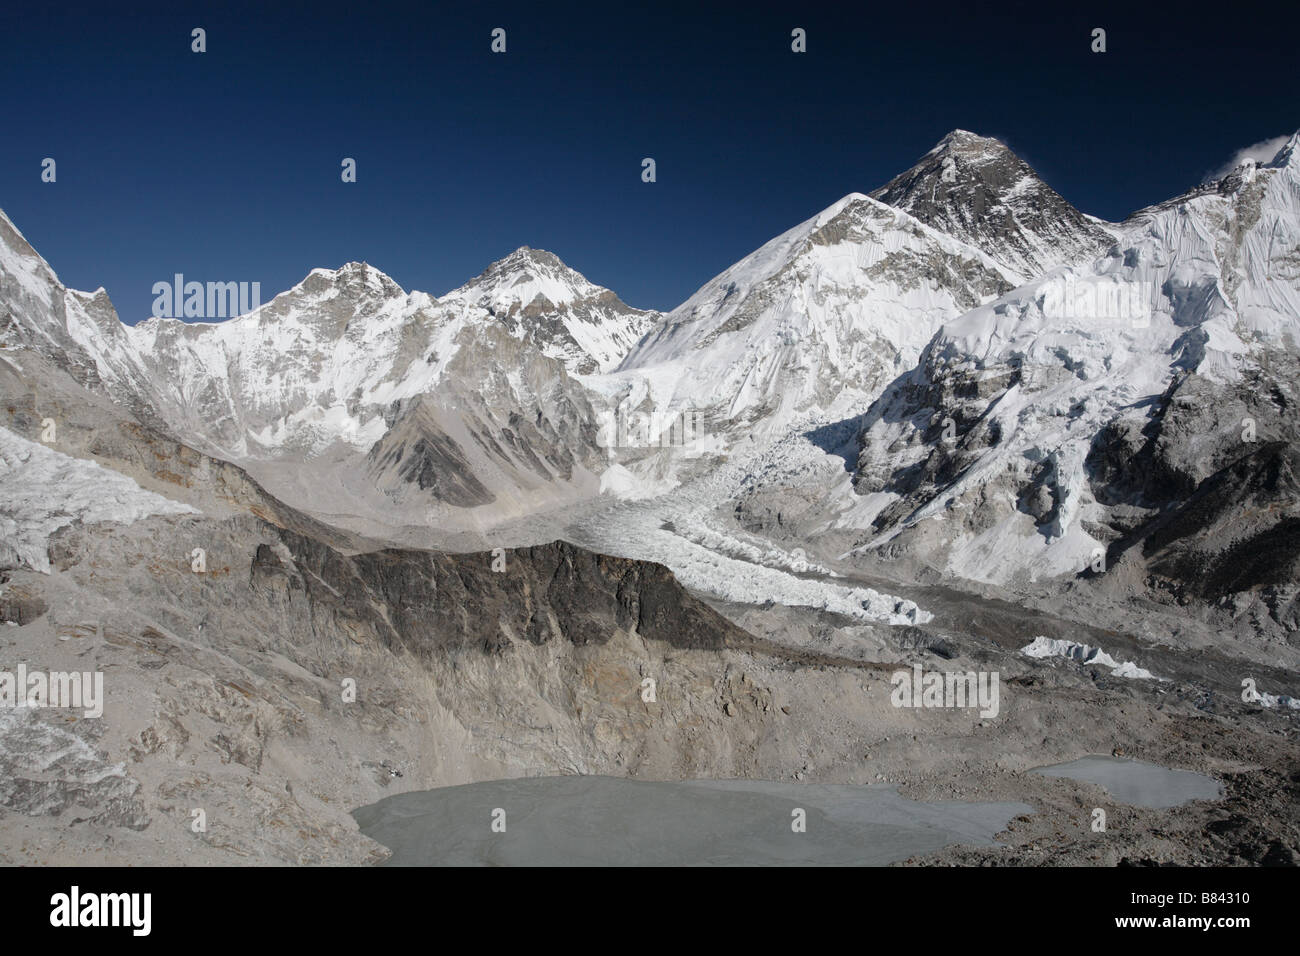 View of the Everest mountain range from the summit of Kala Patthar - Stock Image